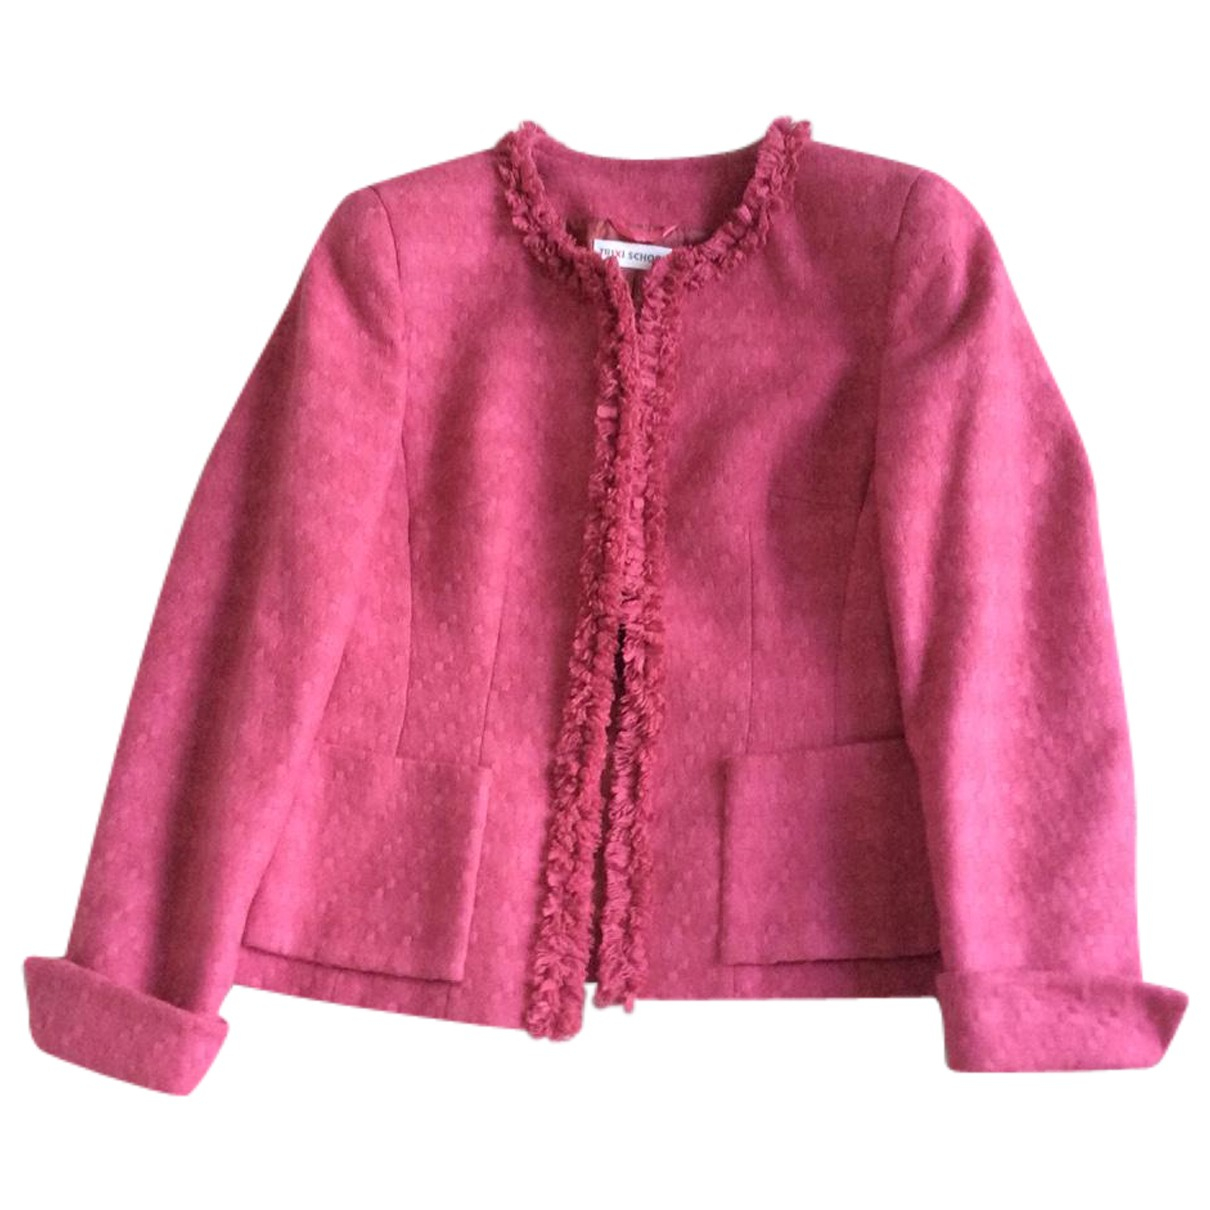 Autre Marque N Pink Wool jacket for Women XS International